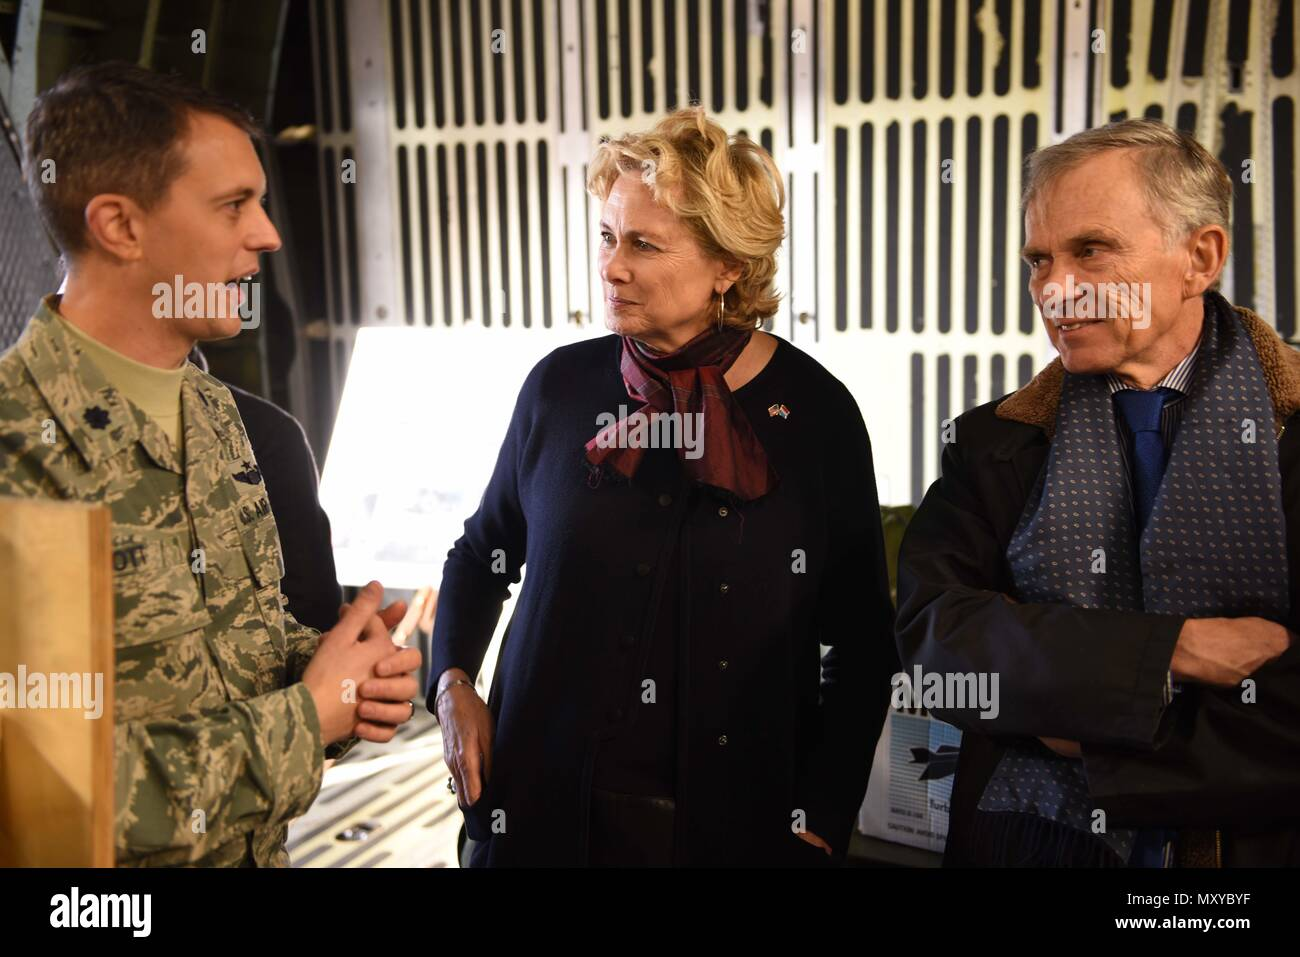 David McKean, right, U.S. Ambassador to Luxembourg, and his wife, Kathleen Kaye, middle, receive a briefing from Lt. Col. Chris Ott, right, 726th Air Mobility Squadron director of operations, inside a C-5M Galaxy about the aircraft's proficiency and usefulness at Spangdahlem Air Base, Germany, Dec. 20, 2016. This was McKean's first visit to the base, during which wing leadership briefed him about the Saber Nation mission and different capabilities. McKean was sworn in as ambassador in March 2016. (U.S. Air Force photo by Senior Airman Joshua R. M. Dewberry) - Stock Image